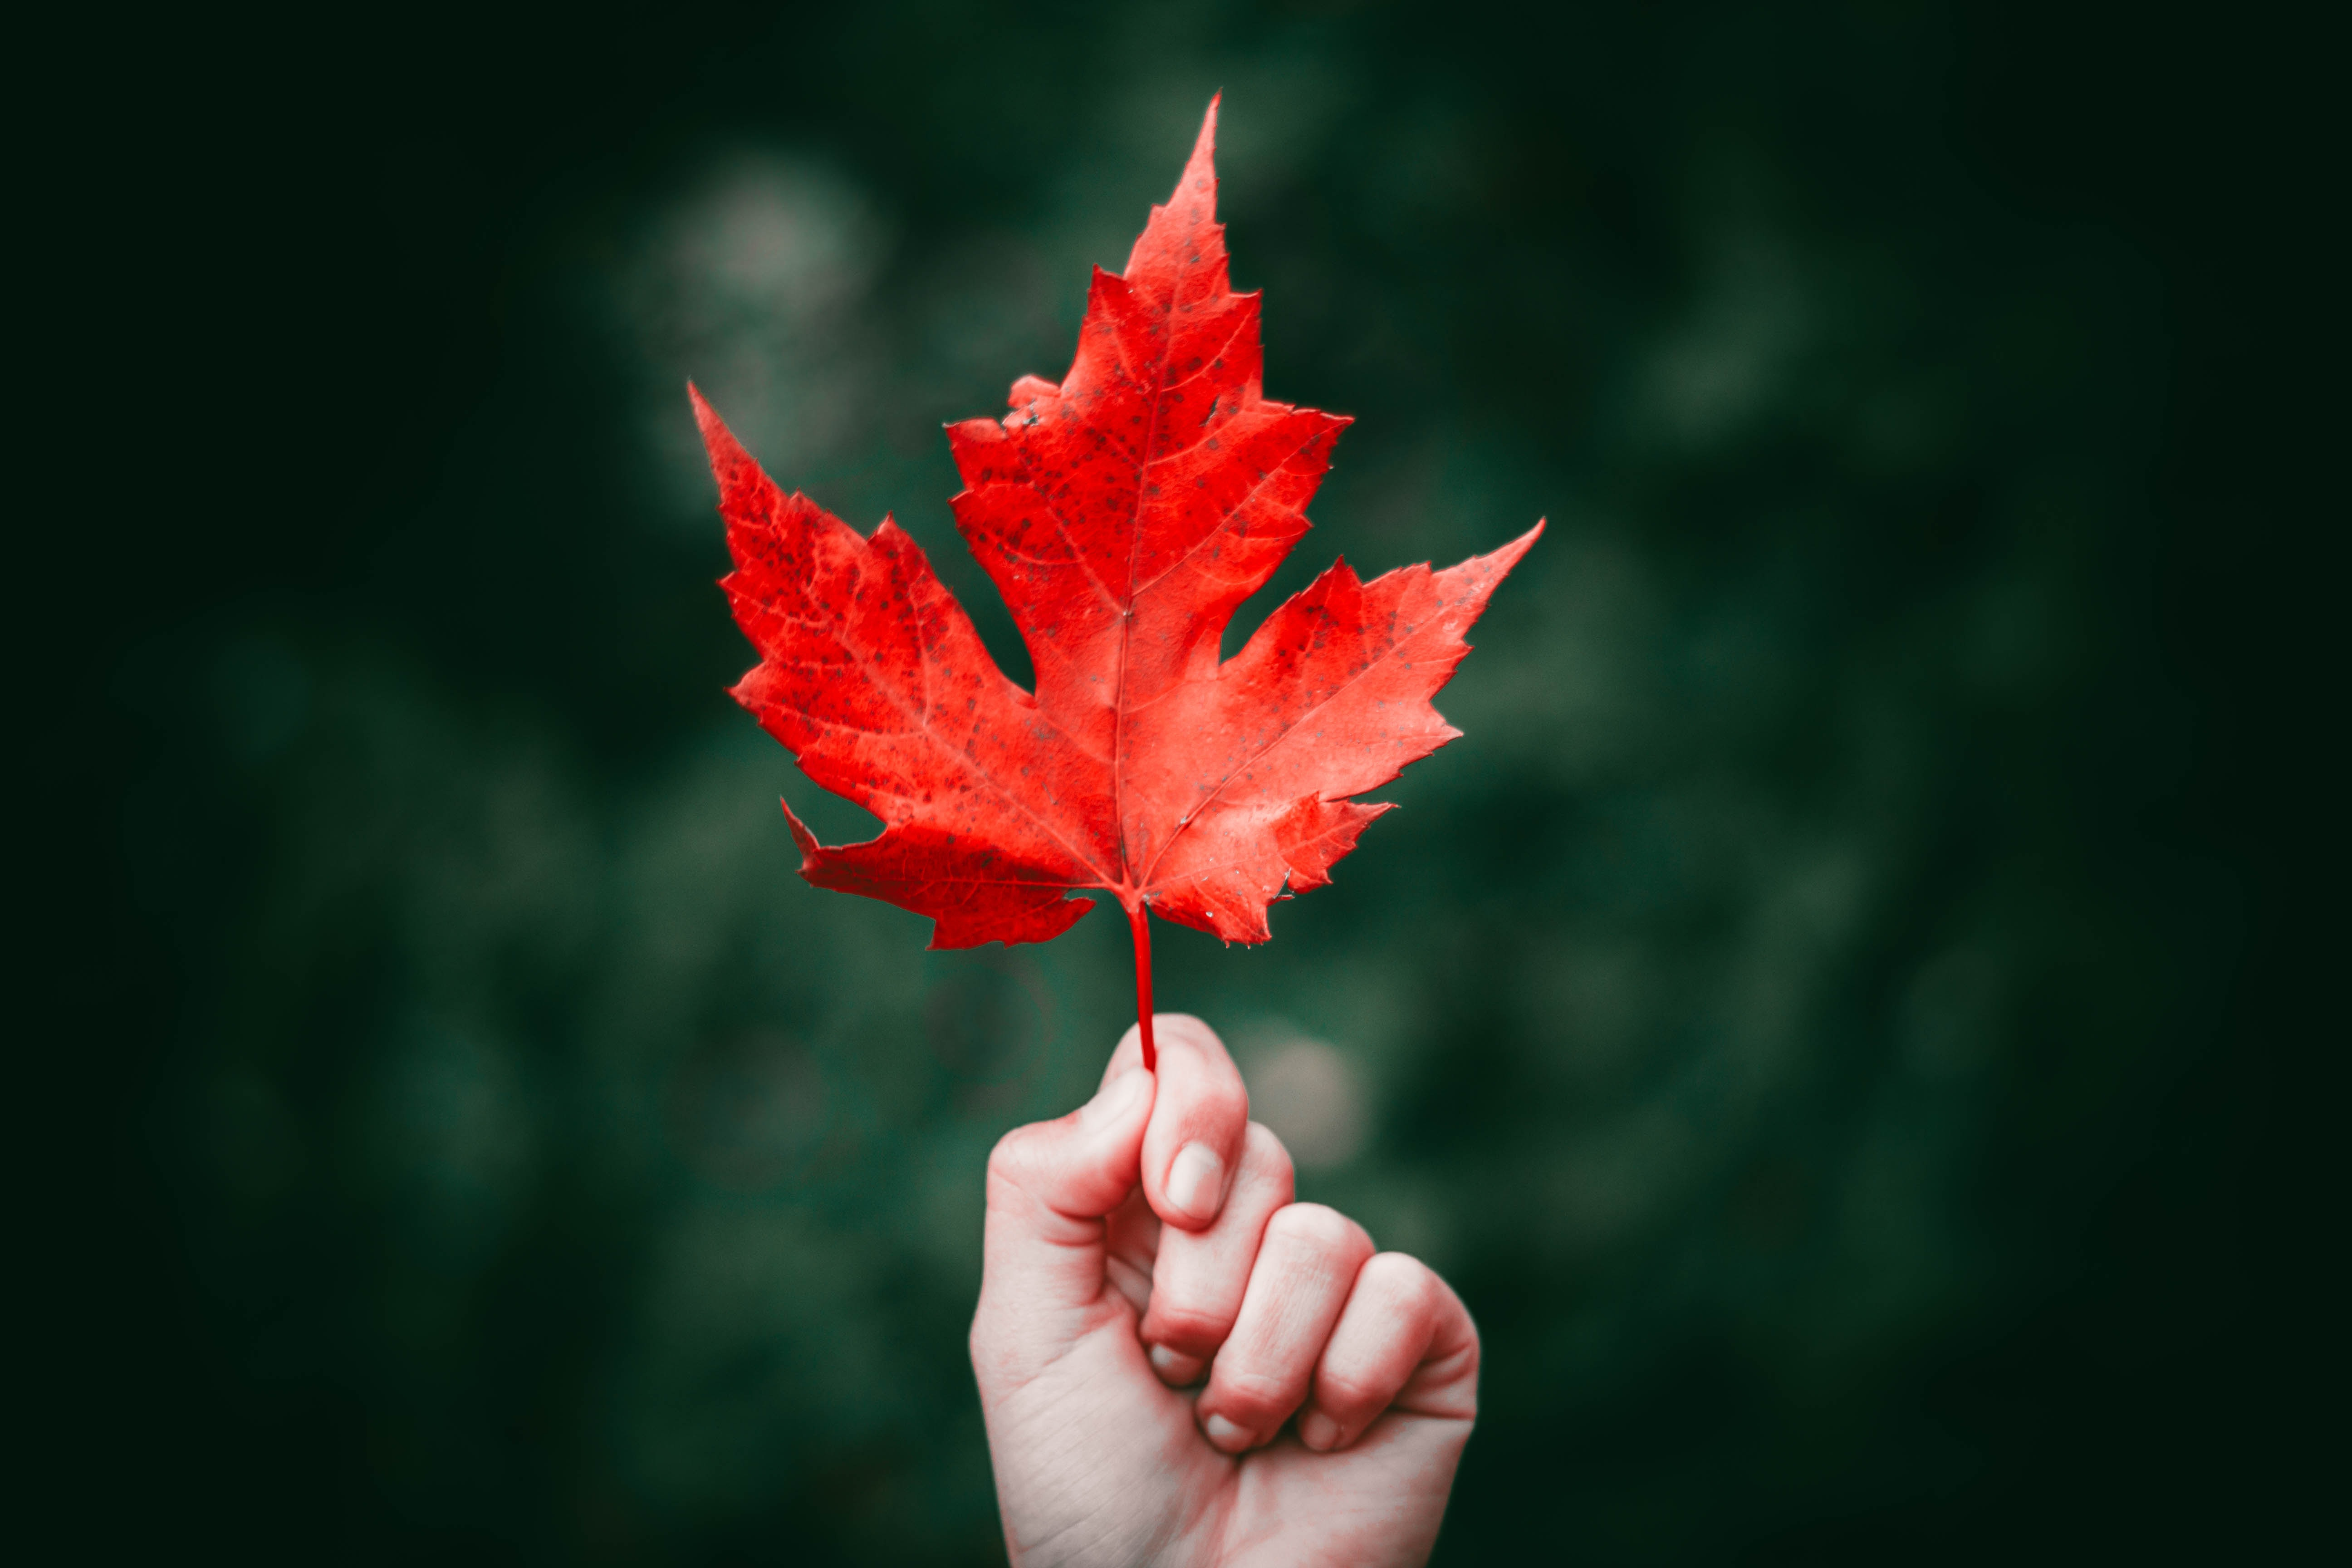 Natural Botox Alternative Maple Leaf Extract Could Prevent Wrinkles